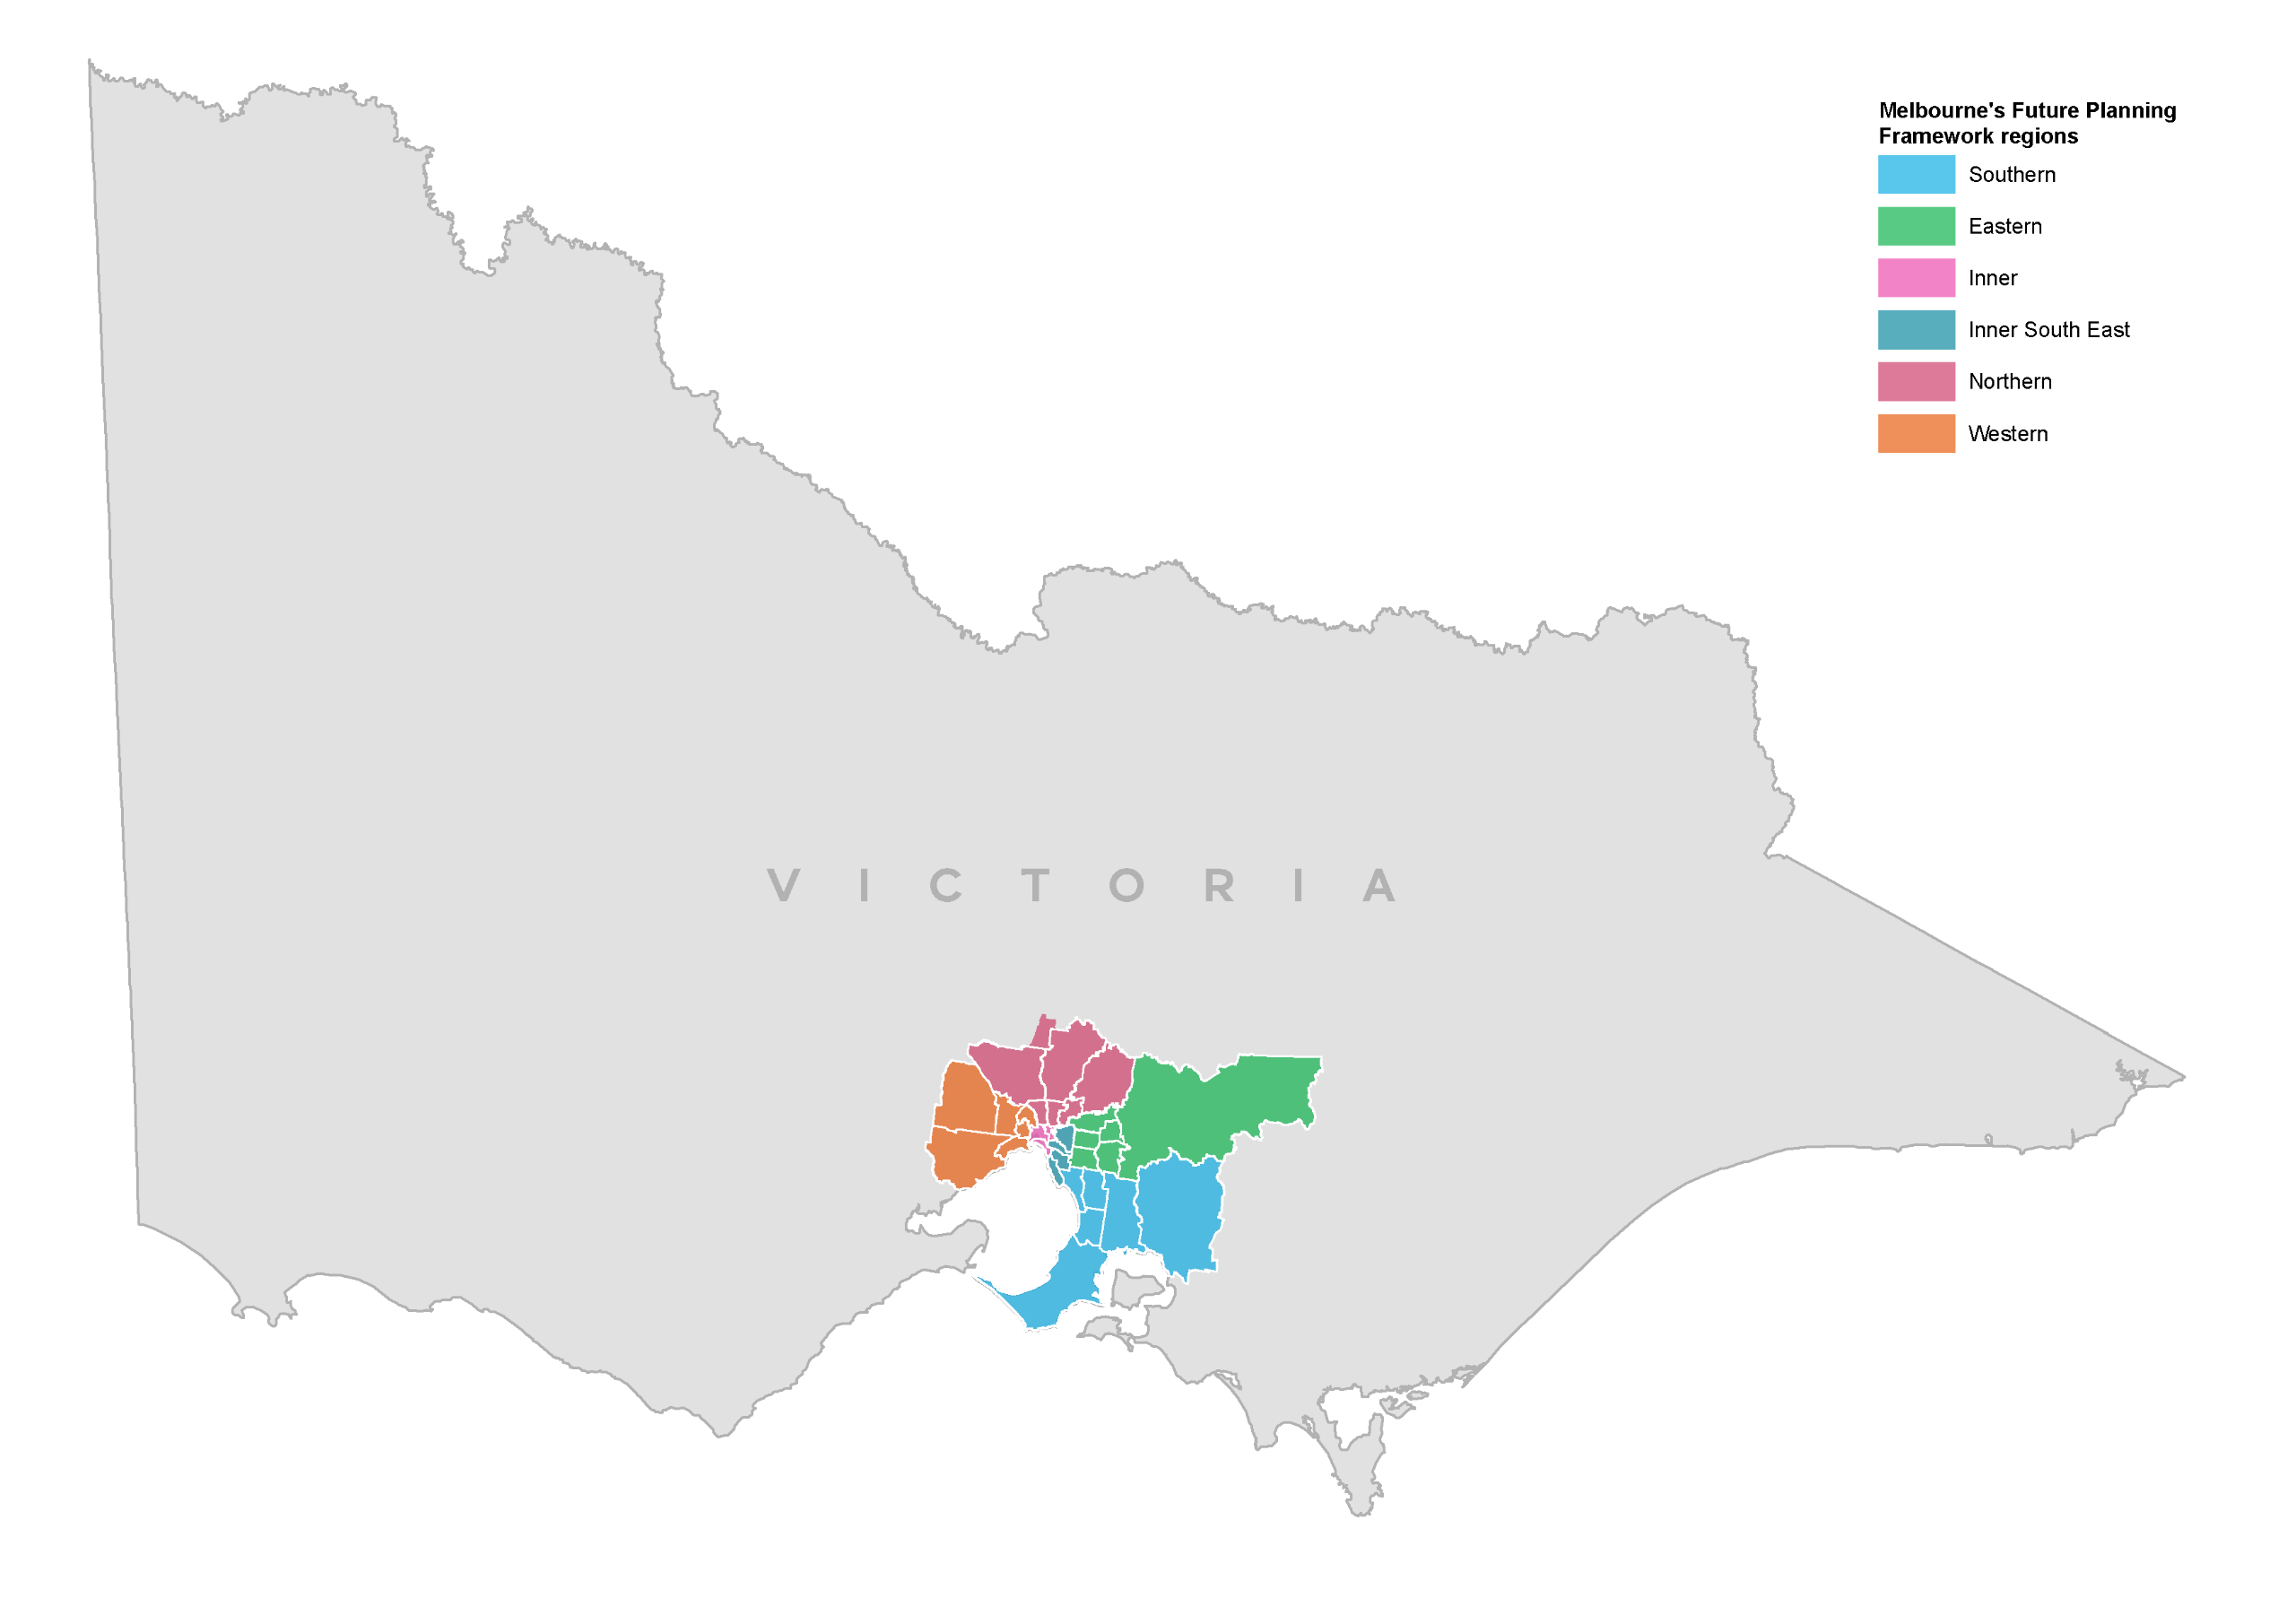 A map of the state of Victoria identifying the location of each of the six regions for the Land Use Framework Plans